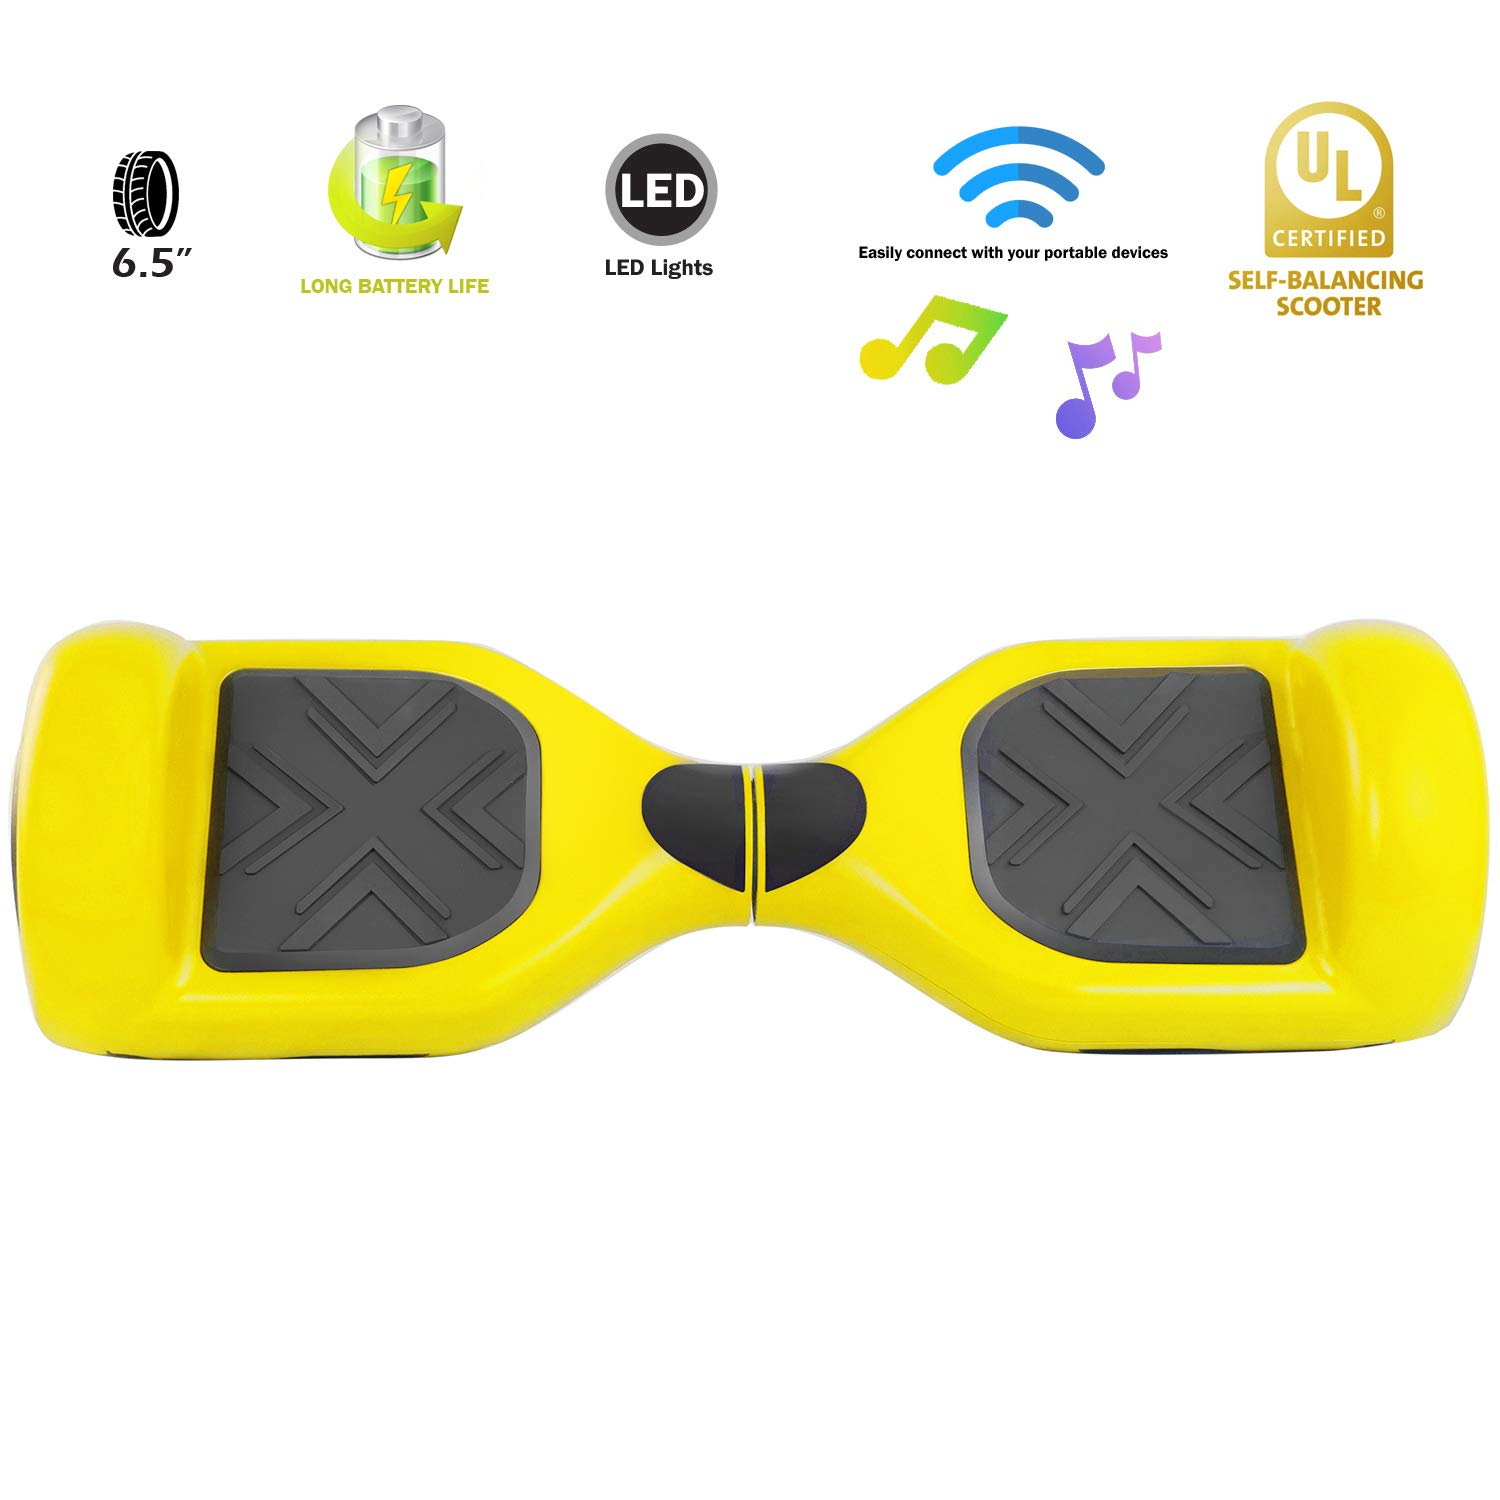 XPRIT Easter Sale Hoverboard w/Bluetooth Speaker (Yellow) by XPRIT (Image #3)